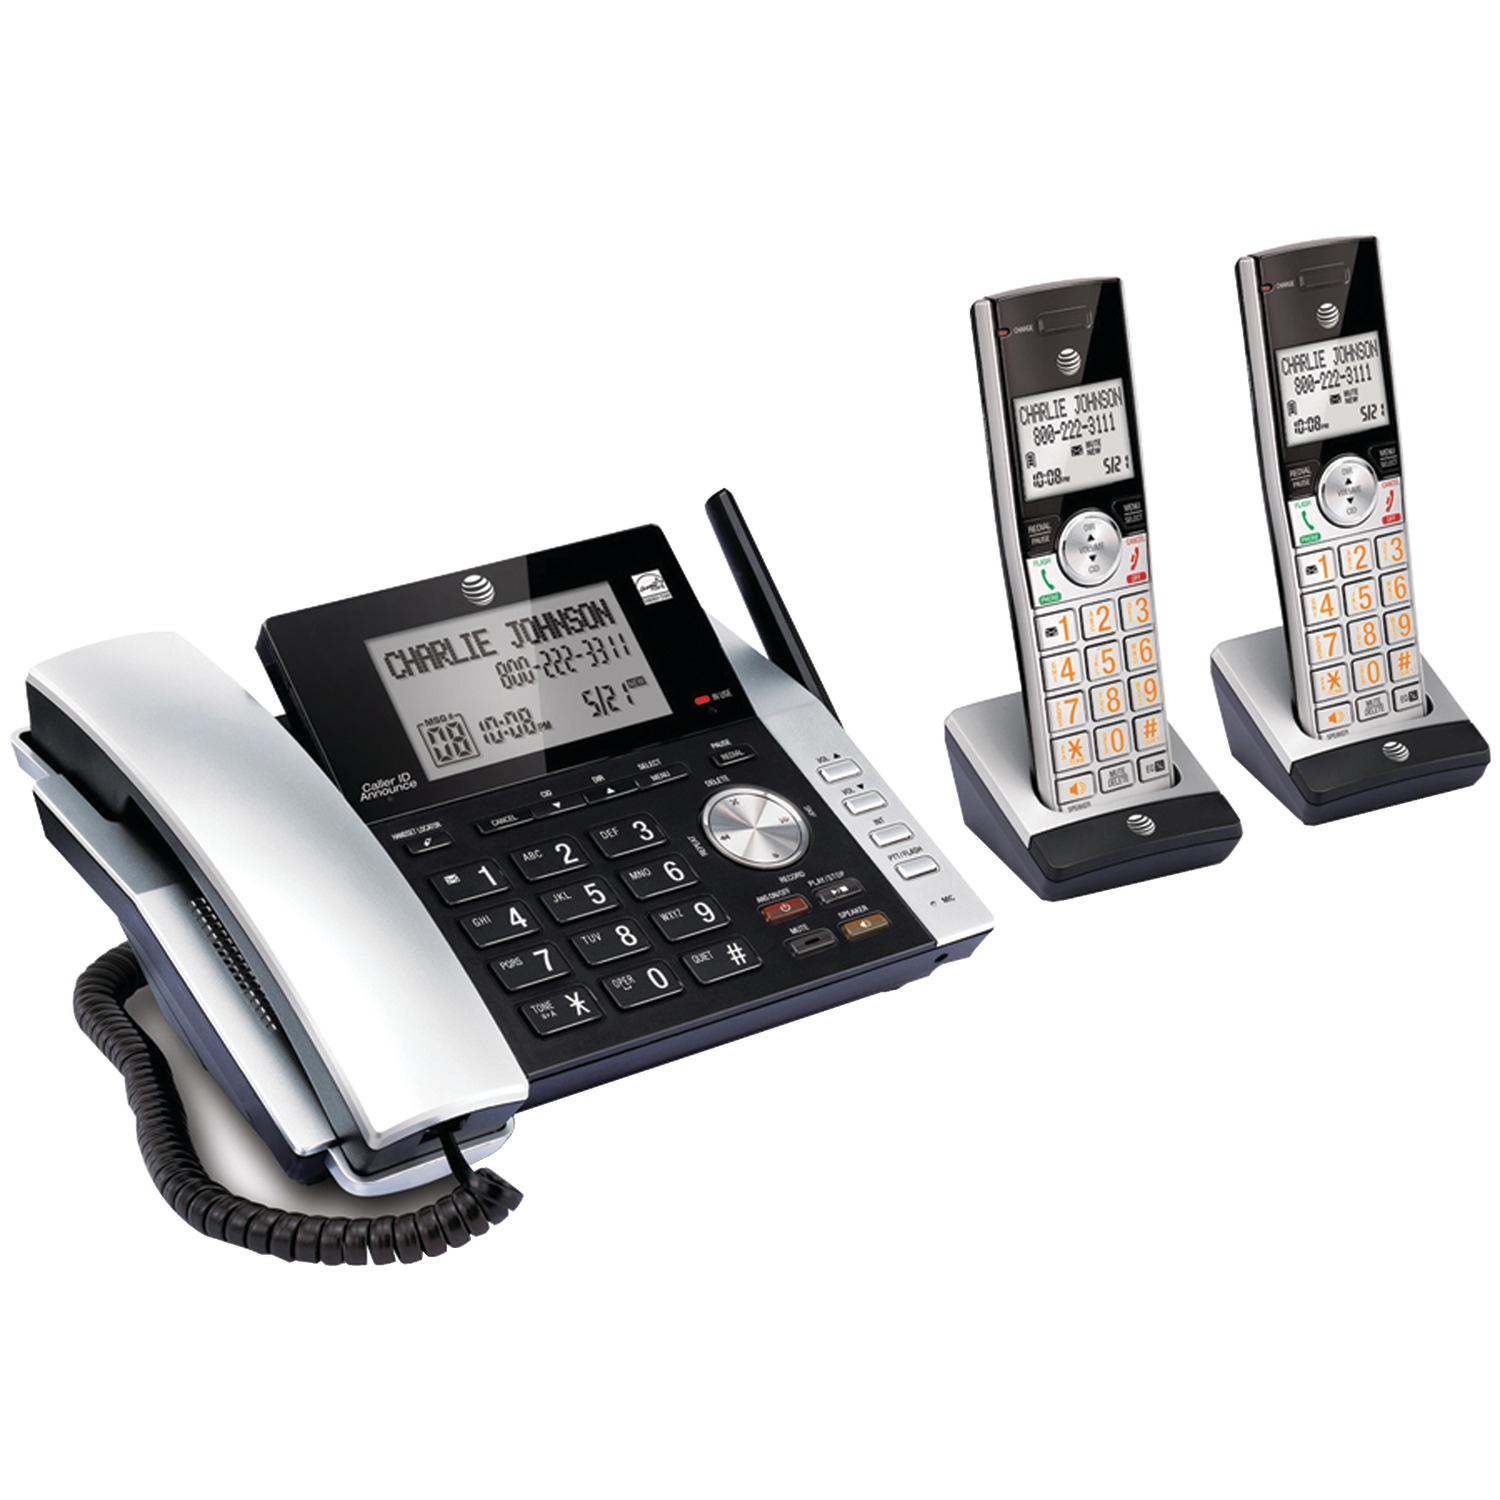 AT&T ATTCL84215 3-Handset Corded/Cordless Answering System